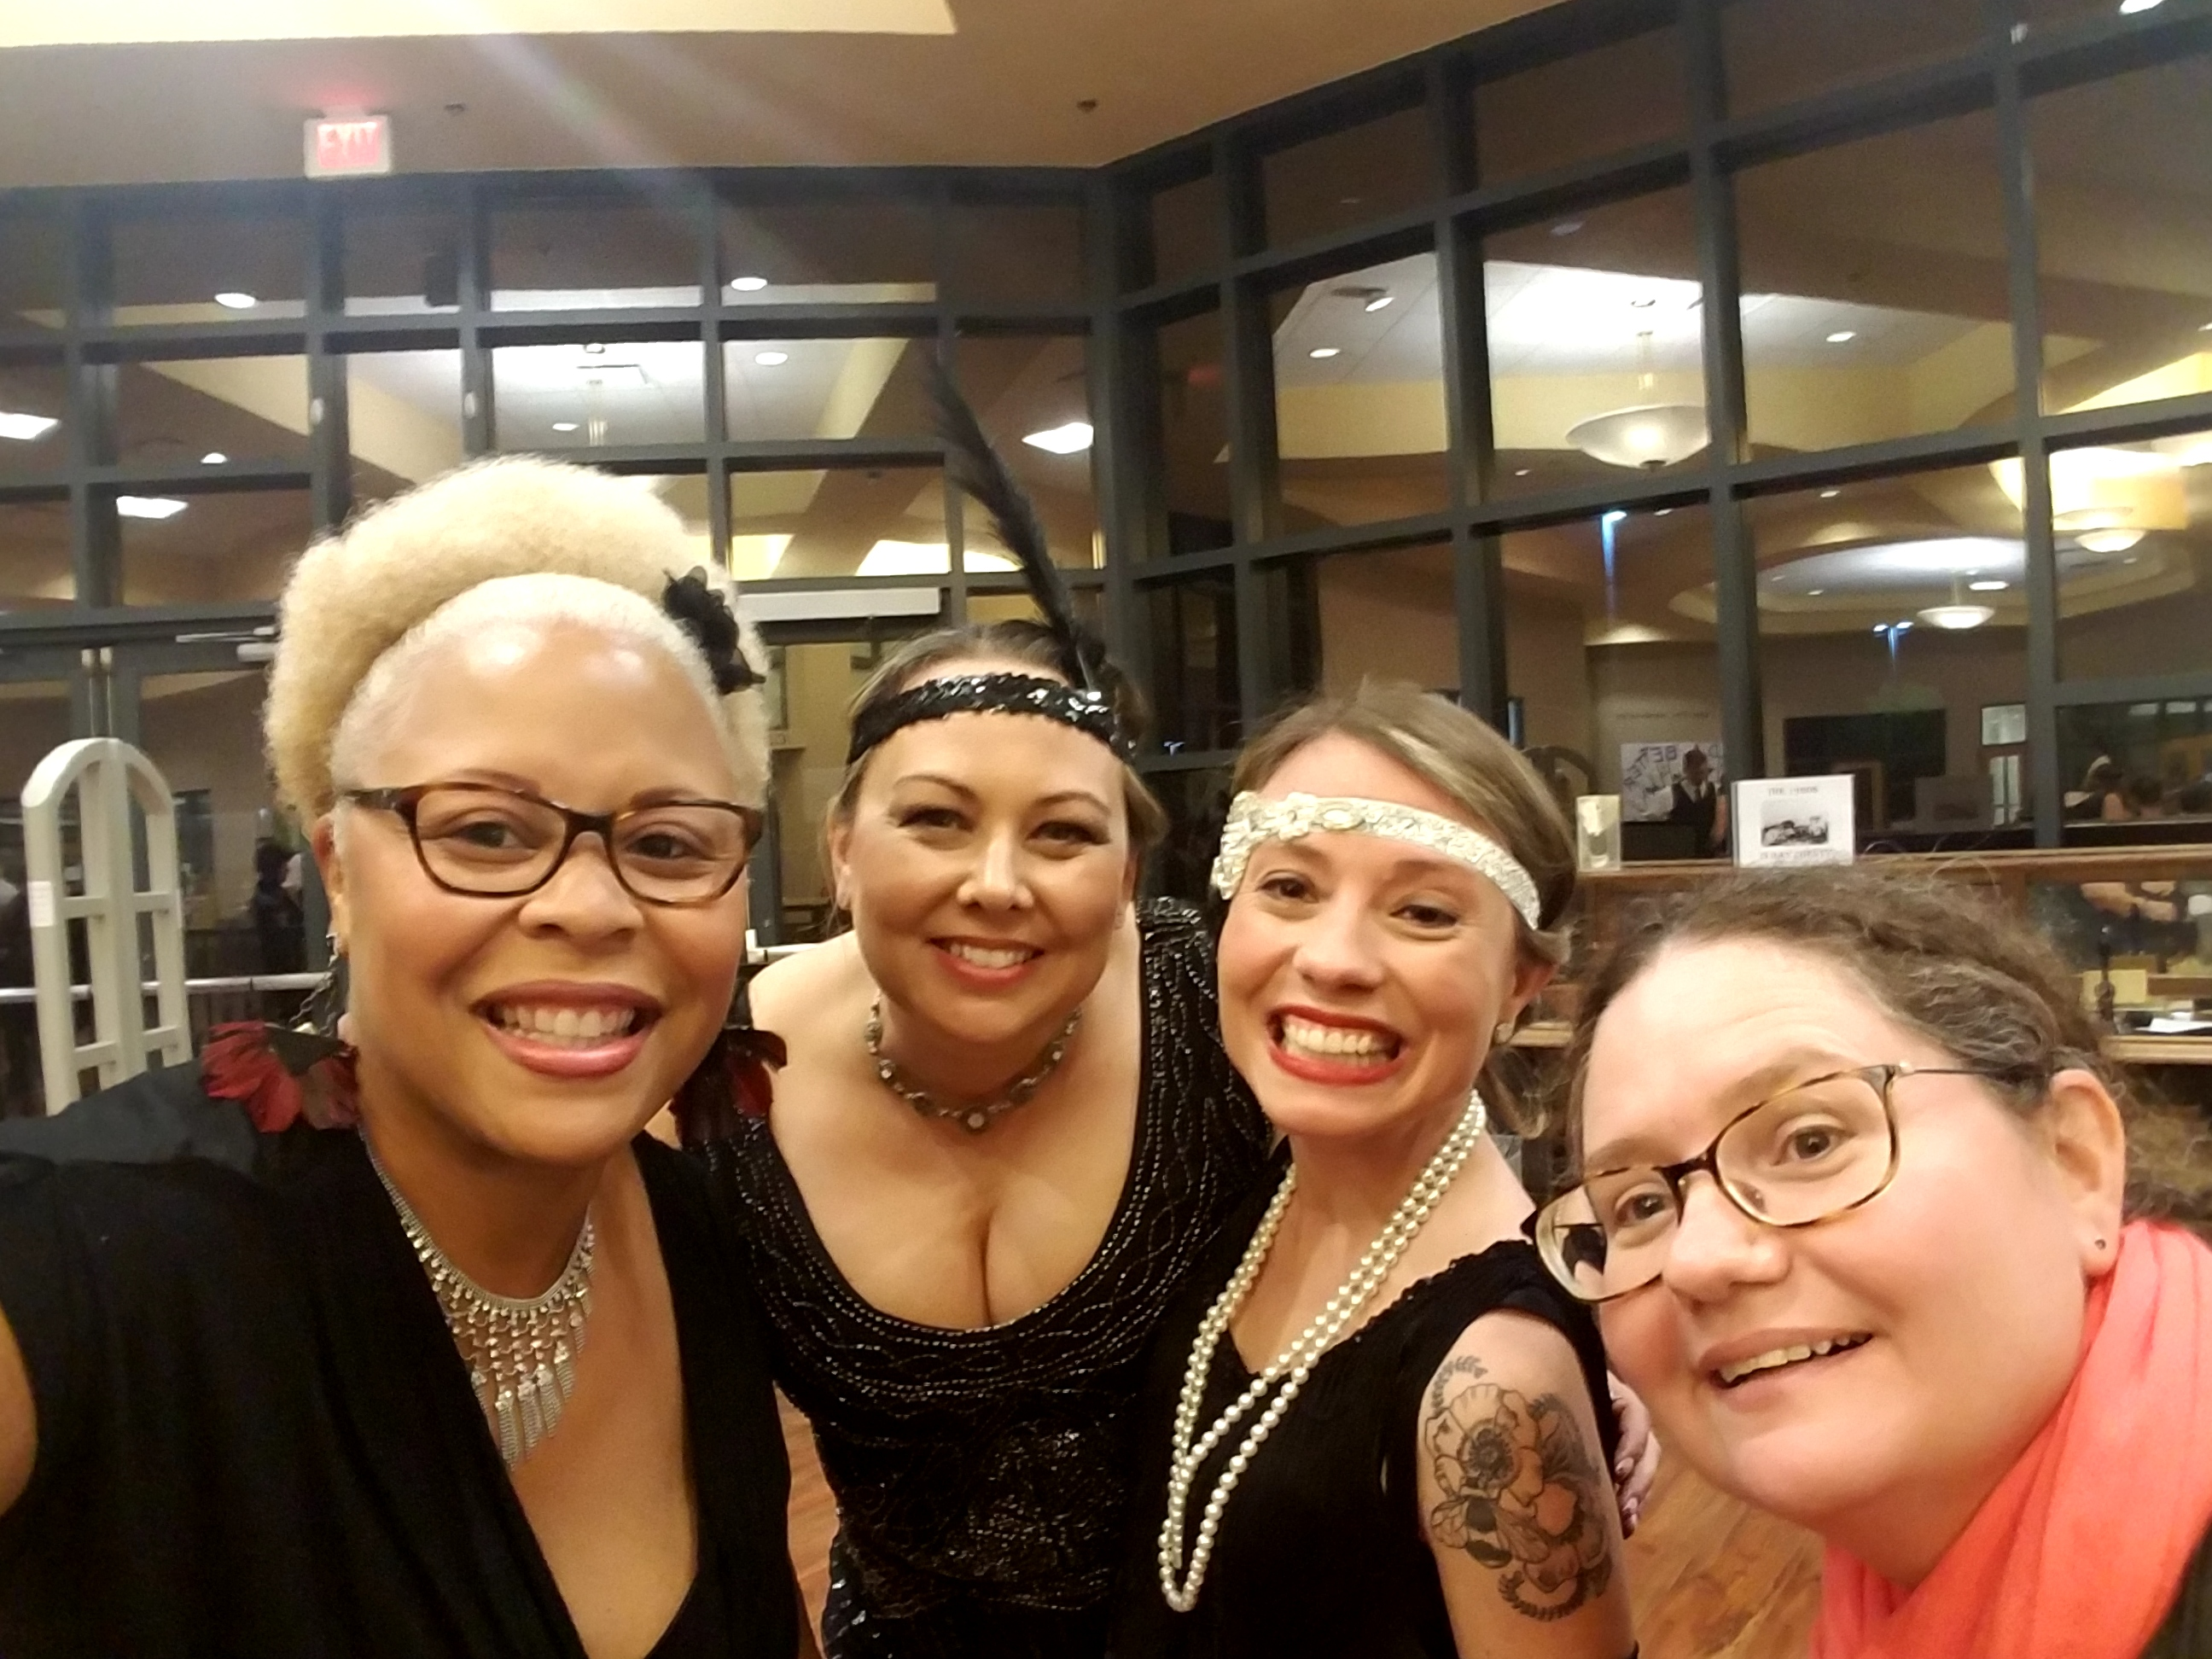 Roaring 20s at the Library